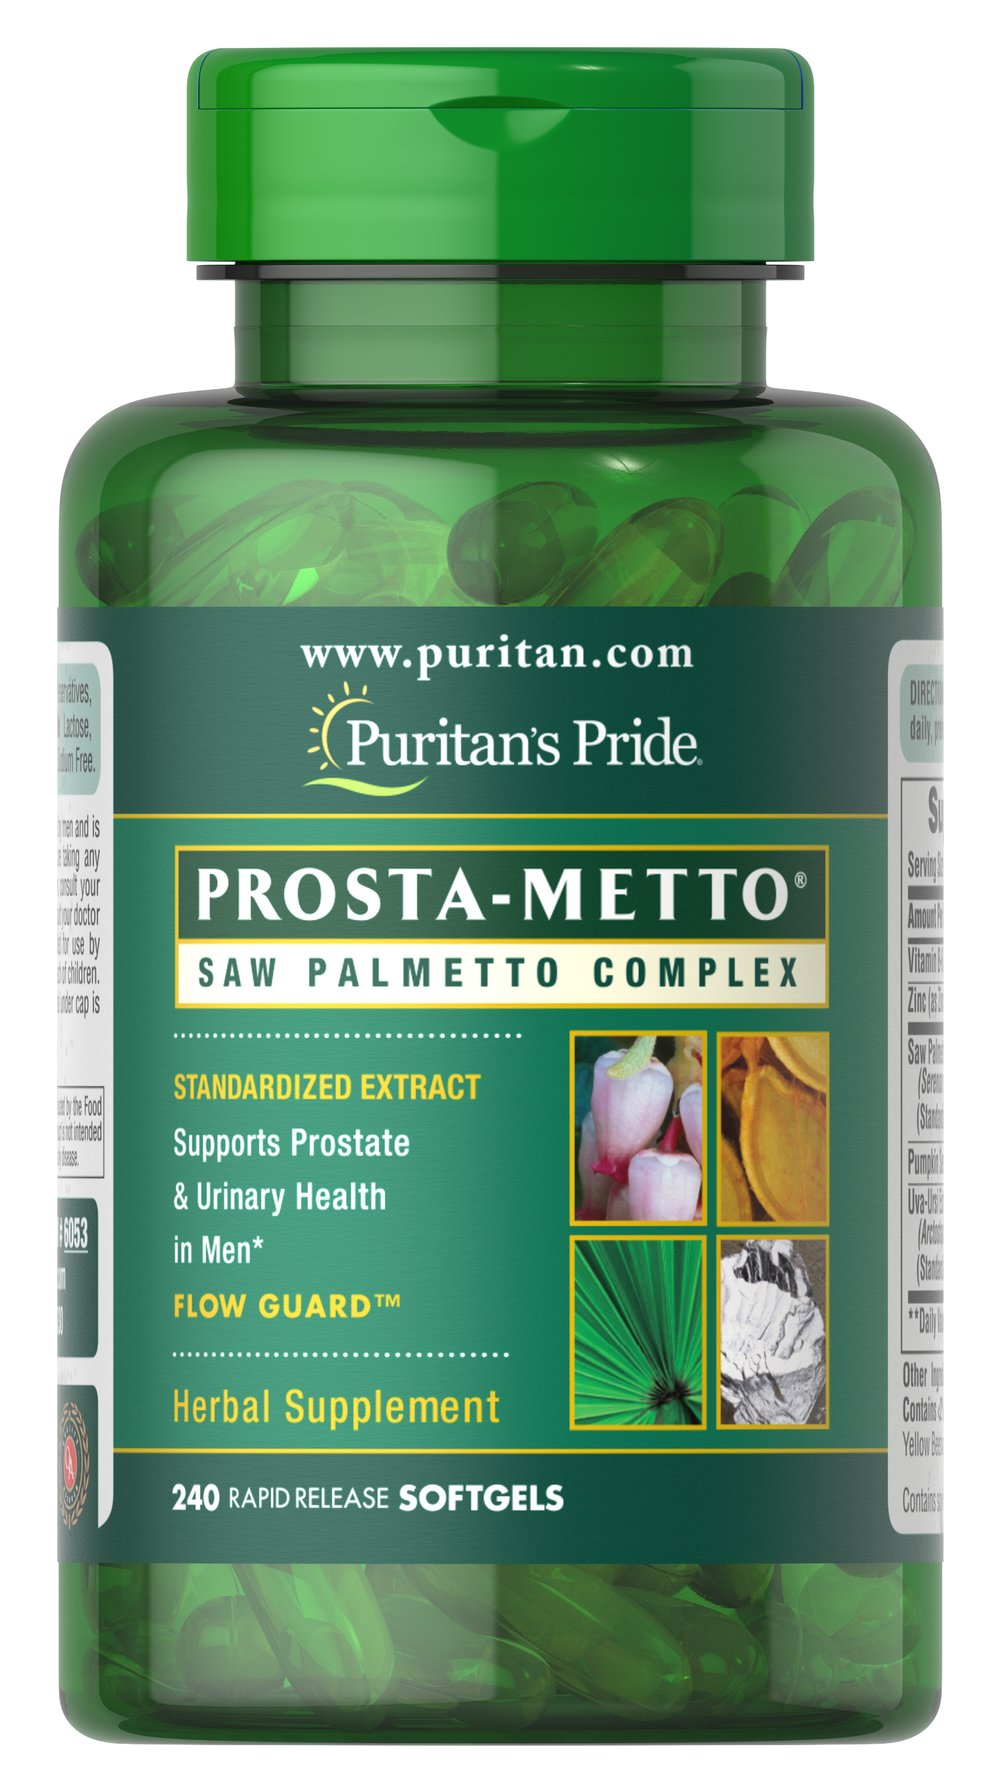 Prosta-Metto® Saw Palmetto Complex For Men <p>Extra Strength Prosta-Metto® softgels deliver 160 mg of standardized Saw Palmetto to support prostate and urinary health in men.** Saw Palmetto is an extract derived from the berry of the Saw Palmetto tree and is the leading herb for men's health.** This formulation also includes Pumpkin Seed Oil, and Uva-Ursi, traditional ingredients for men's health, plus Zinc for the immune system.** </p> 240 Softgels  $46.99